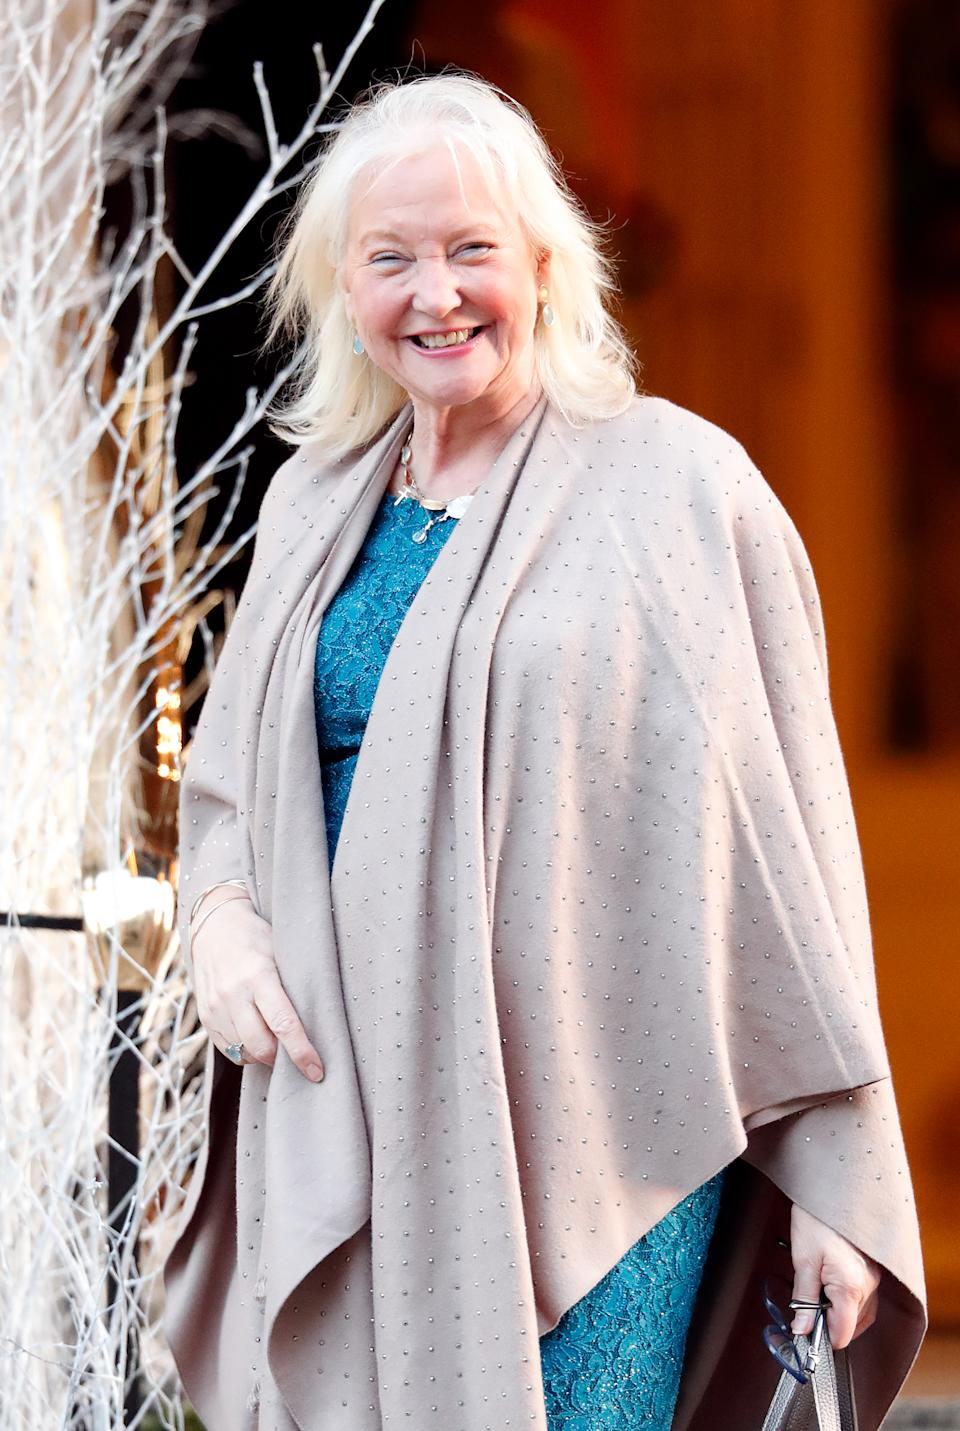 LONDON, UNITED KINGDOM - DECEMBER 11: (EMBARGOED FOR PUBLICATION IN UK NEWSPAPERS UNTIL 24 HOURS AFTER CREATE DATE AND TIME) Angela Kelly (Personal Assistant and Dress Maker to Queen Elizabeth II) leaves the Goring Hotel after attending a Christmas lunch hosted by The Queen for her close members of staff on December 11, 2018 in London, England. (Photo by Max Mumby/Indigo/Getty Images)